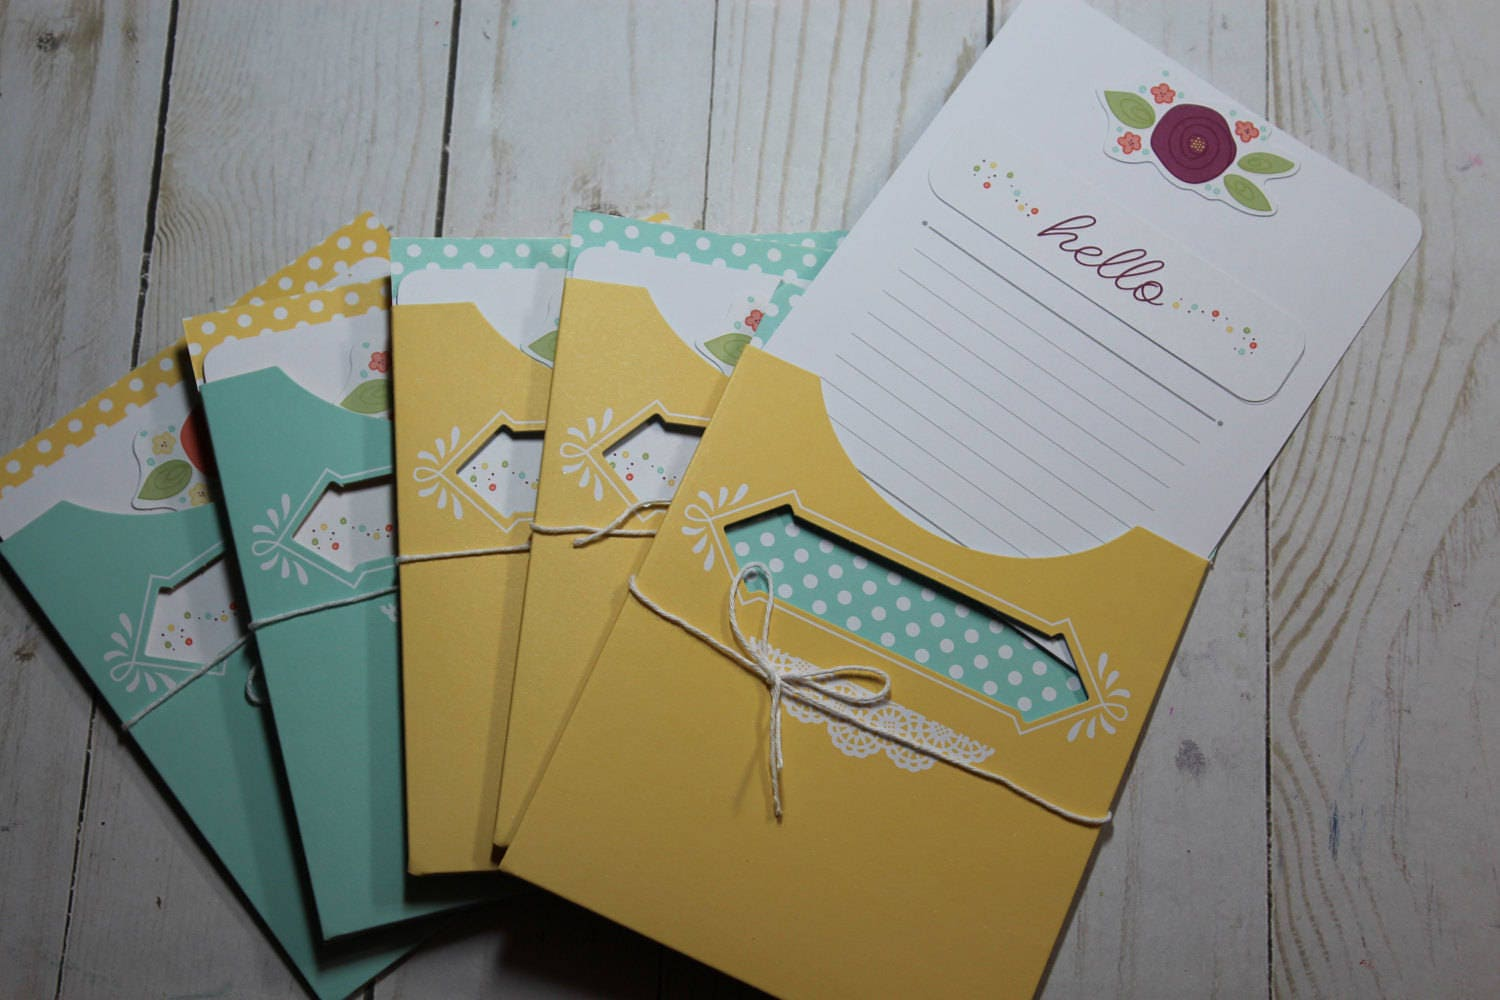 5 hello greeting cards blank inside greeting cards greeting 5 hello greeting cards blank inside greeting cards greeting card set greeting card kristyandbryce Image collections